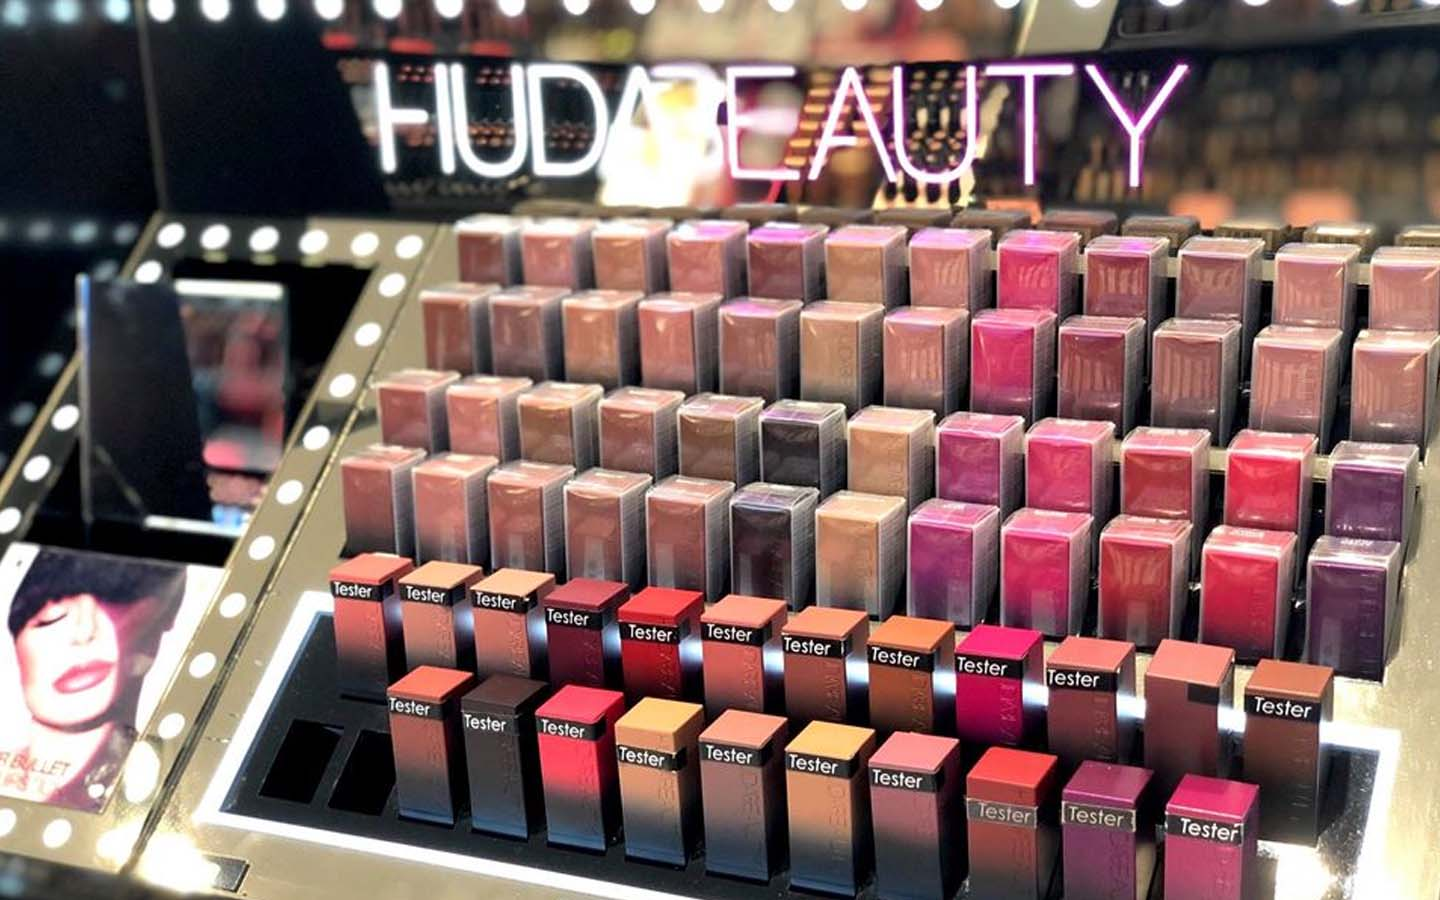 Huda Beauty lipsticks